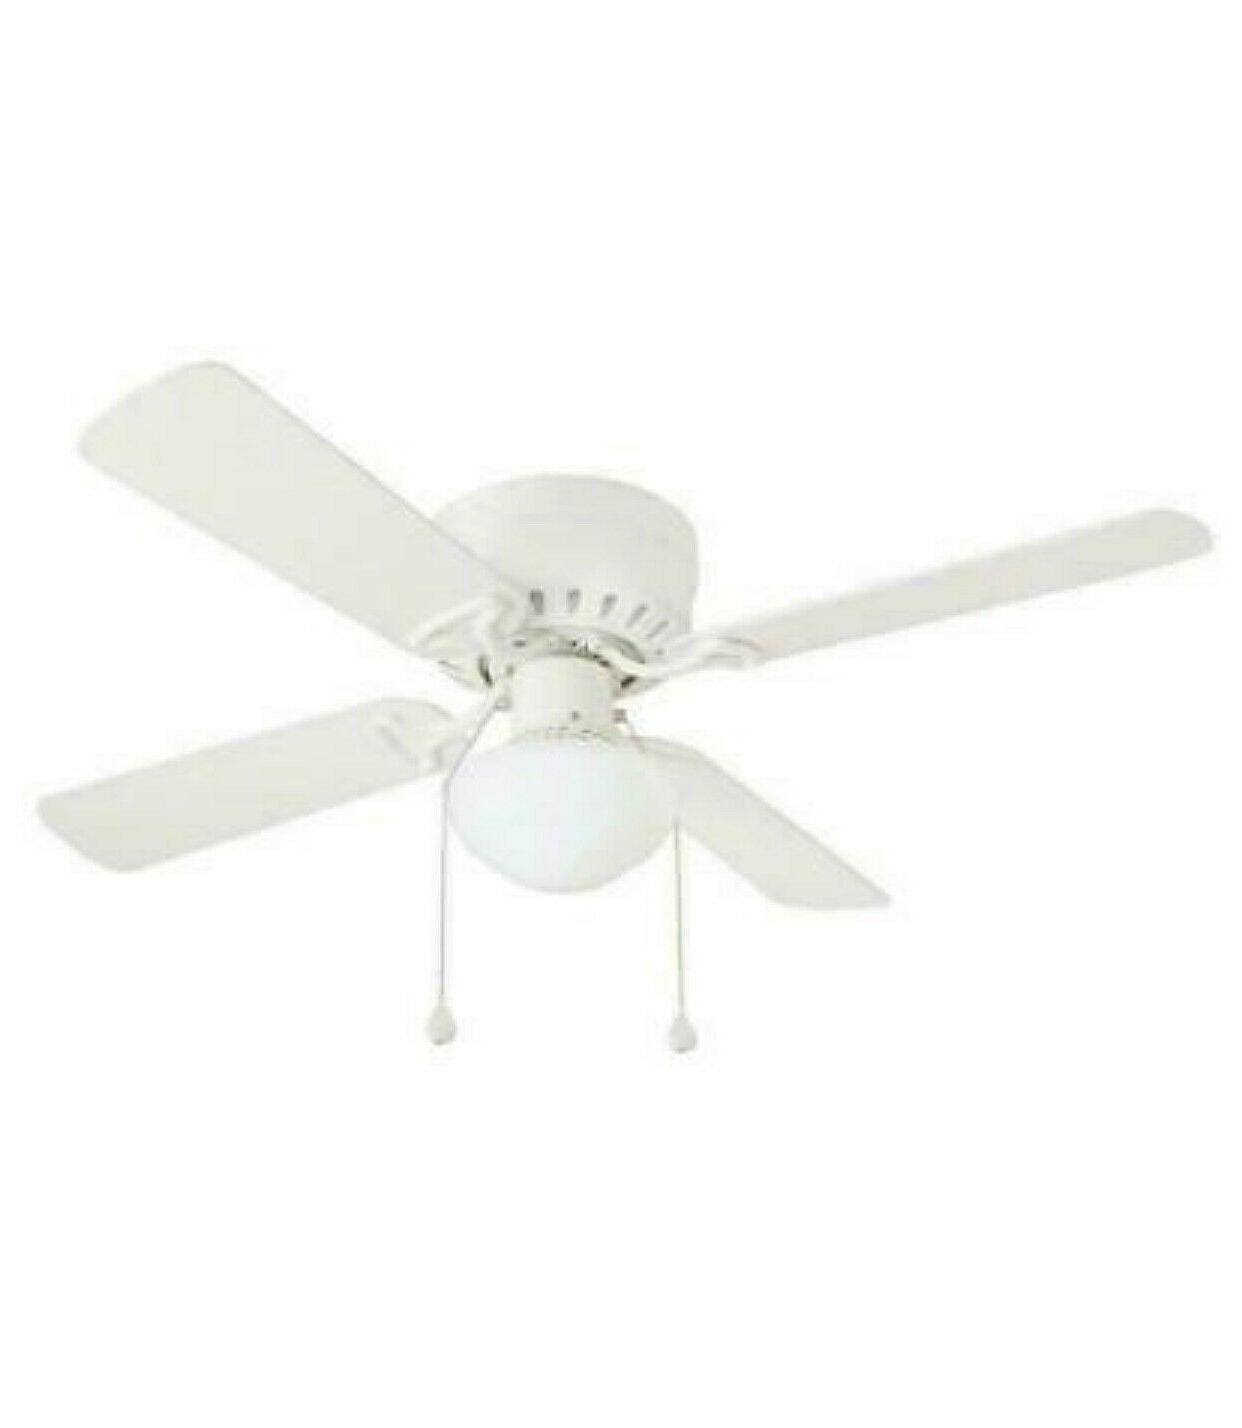 42 indoor white ceiling fan with light